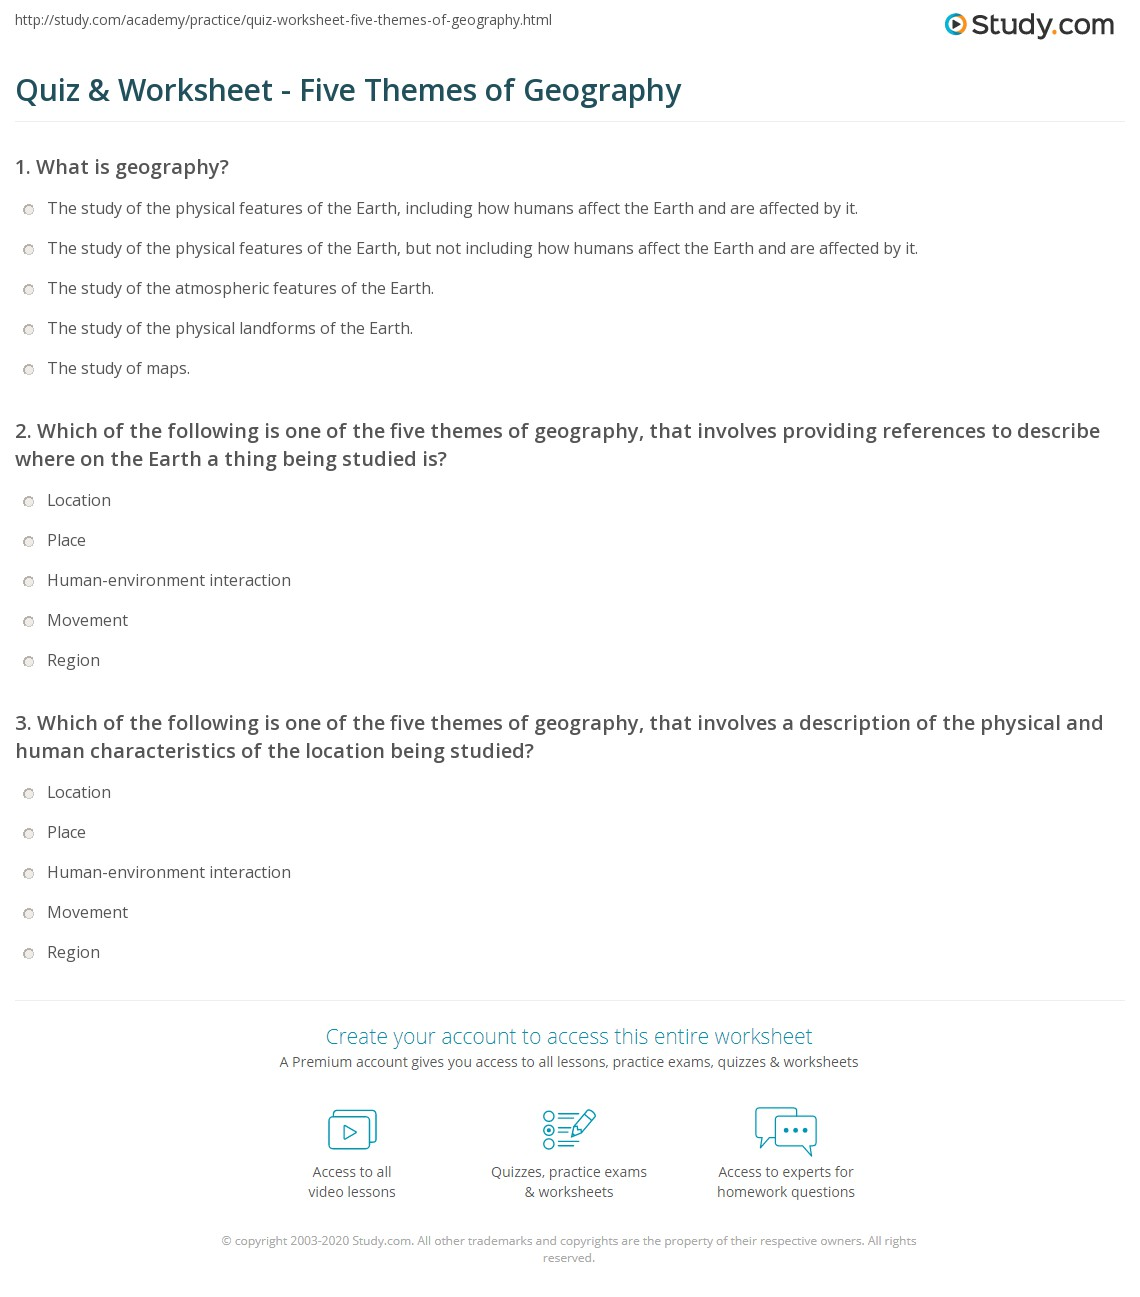 Quiz Worksheet Five Themes Of Geography Study Com